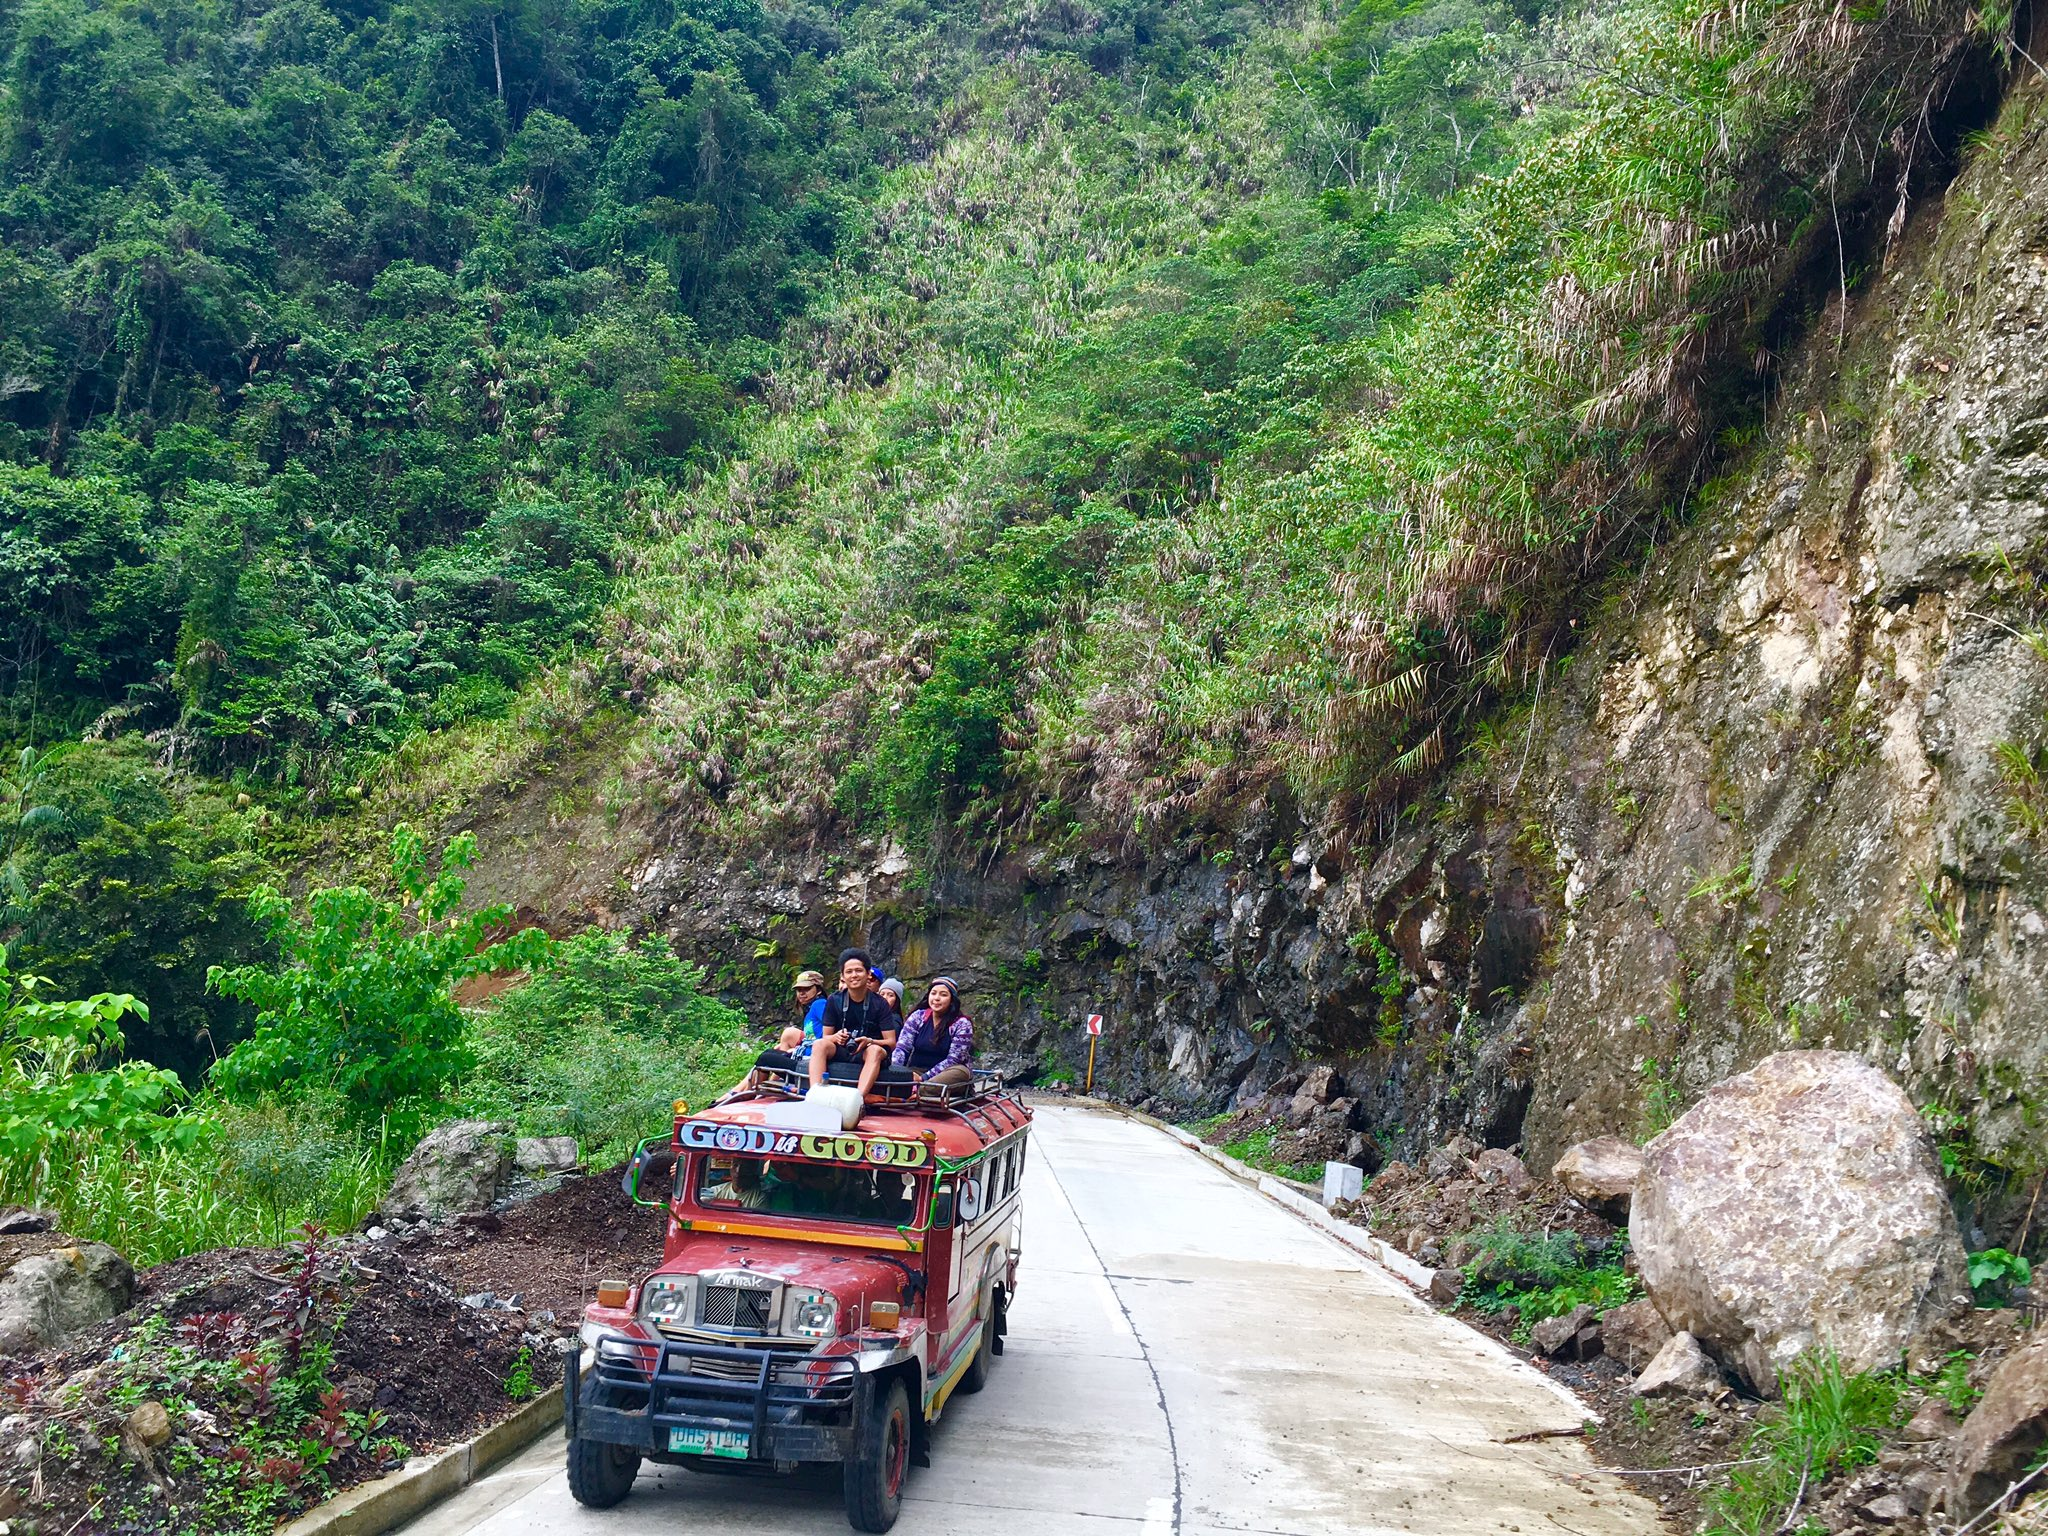 Top load ride in Banaue https://t.co/11d500Ffll